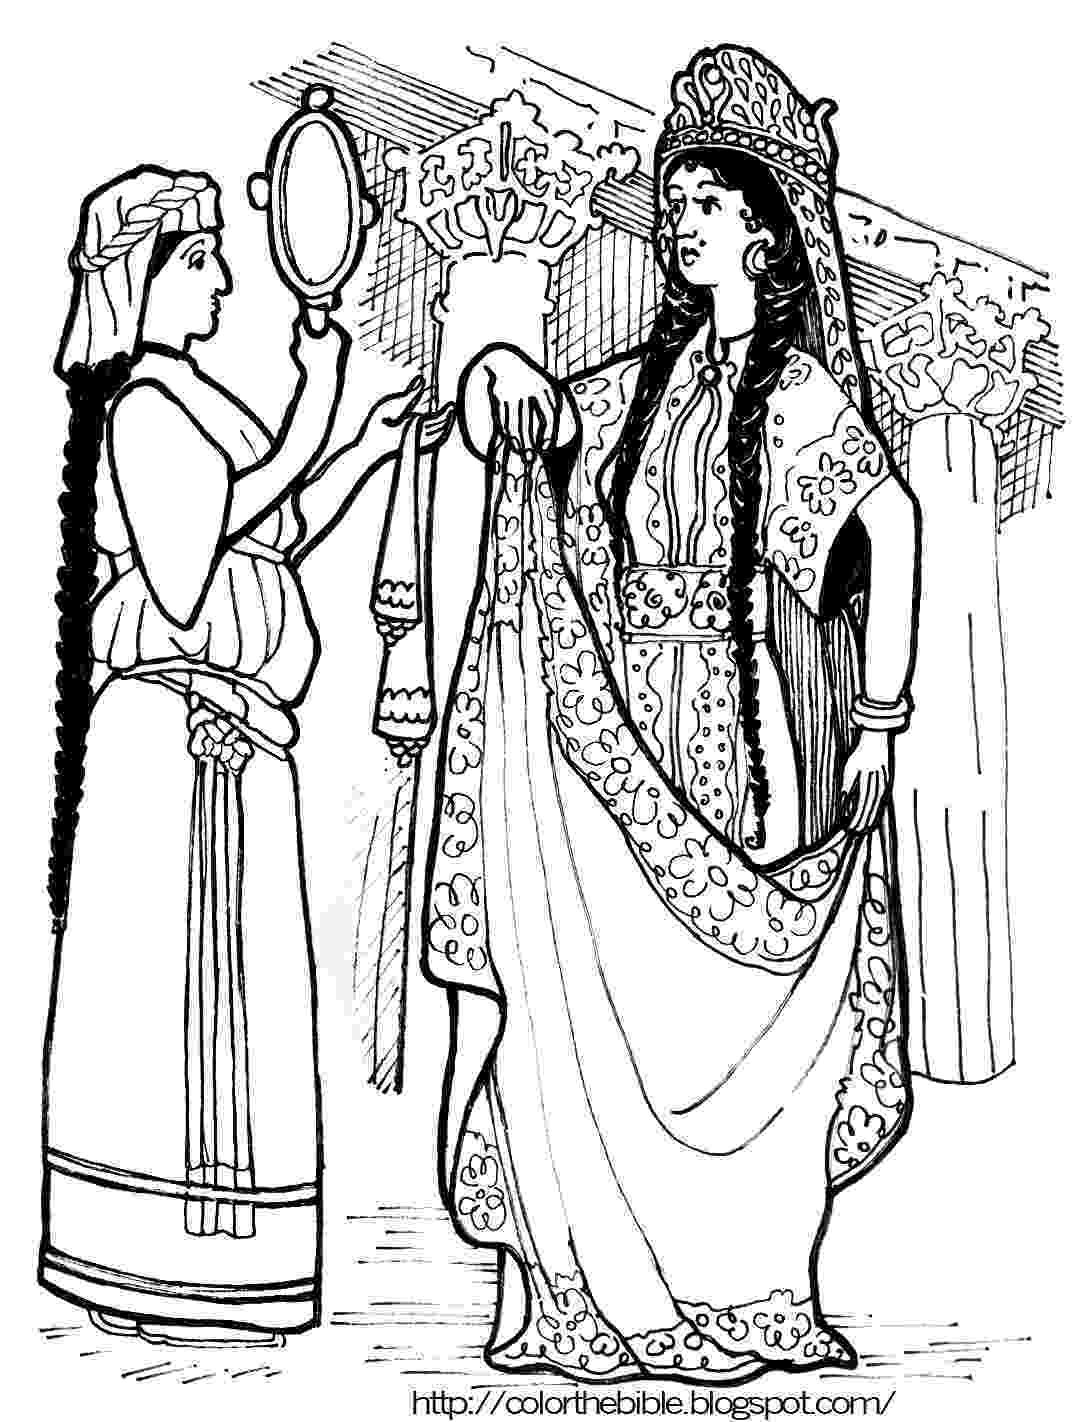 queen esther coloring pages queen esther coloring page sunday school coloring pages coloring esther pages queen